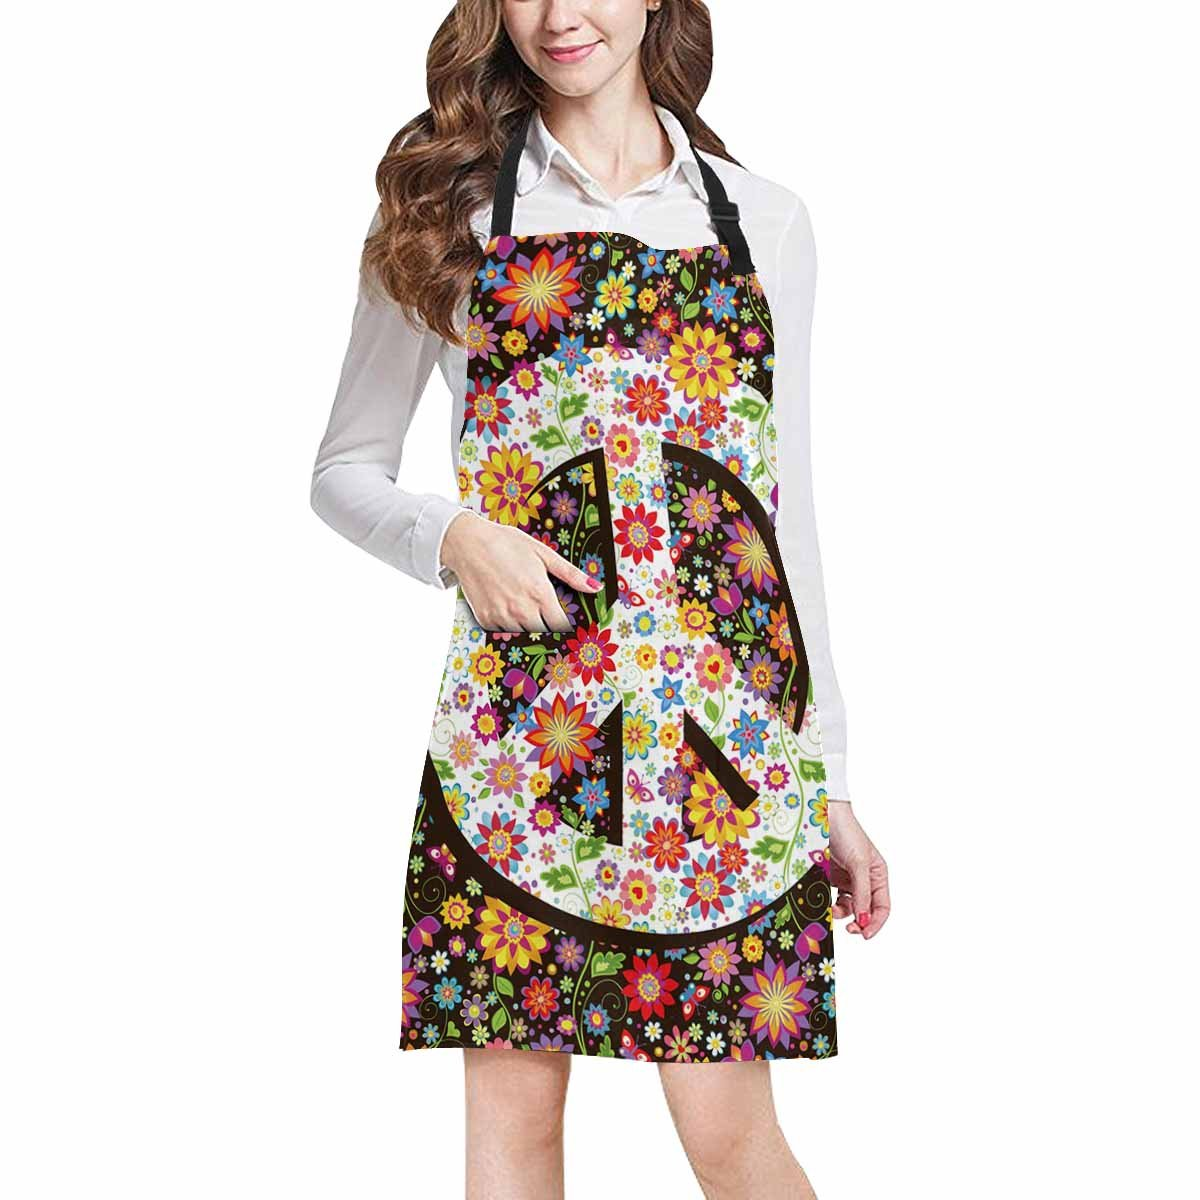 InterestPrint Hippie Floral Peace Symbol with Various Flowers Home Kitchen Apron for Women Men with Pockets, Unisex Adjustable Bib Apron for Cooking Baking Gardening, Large Size